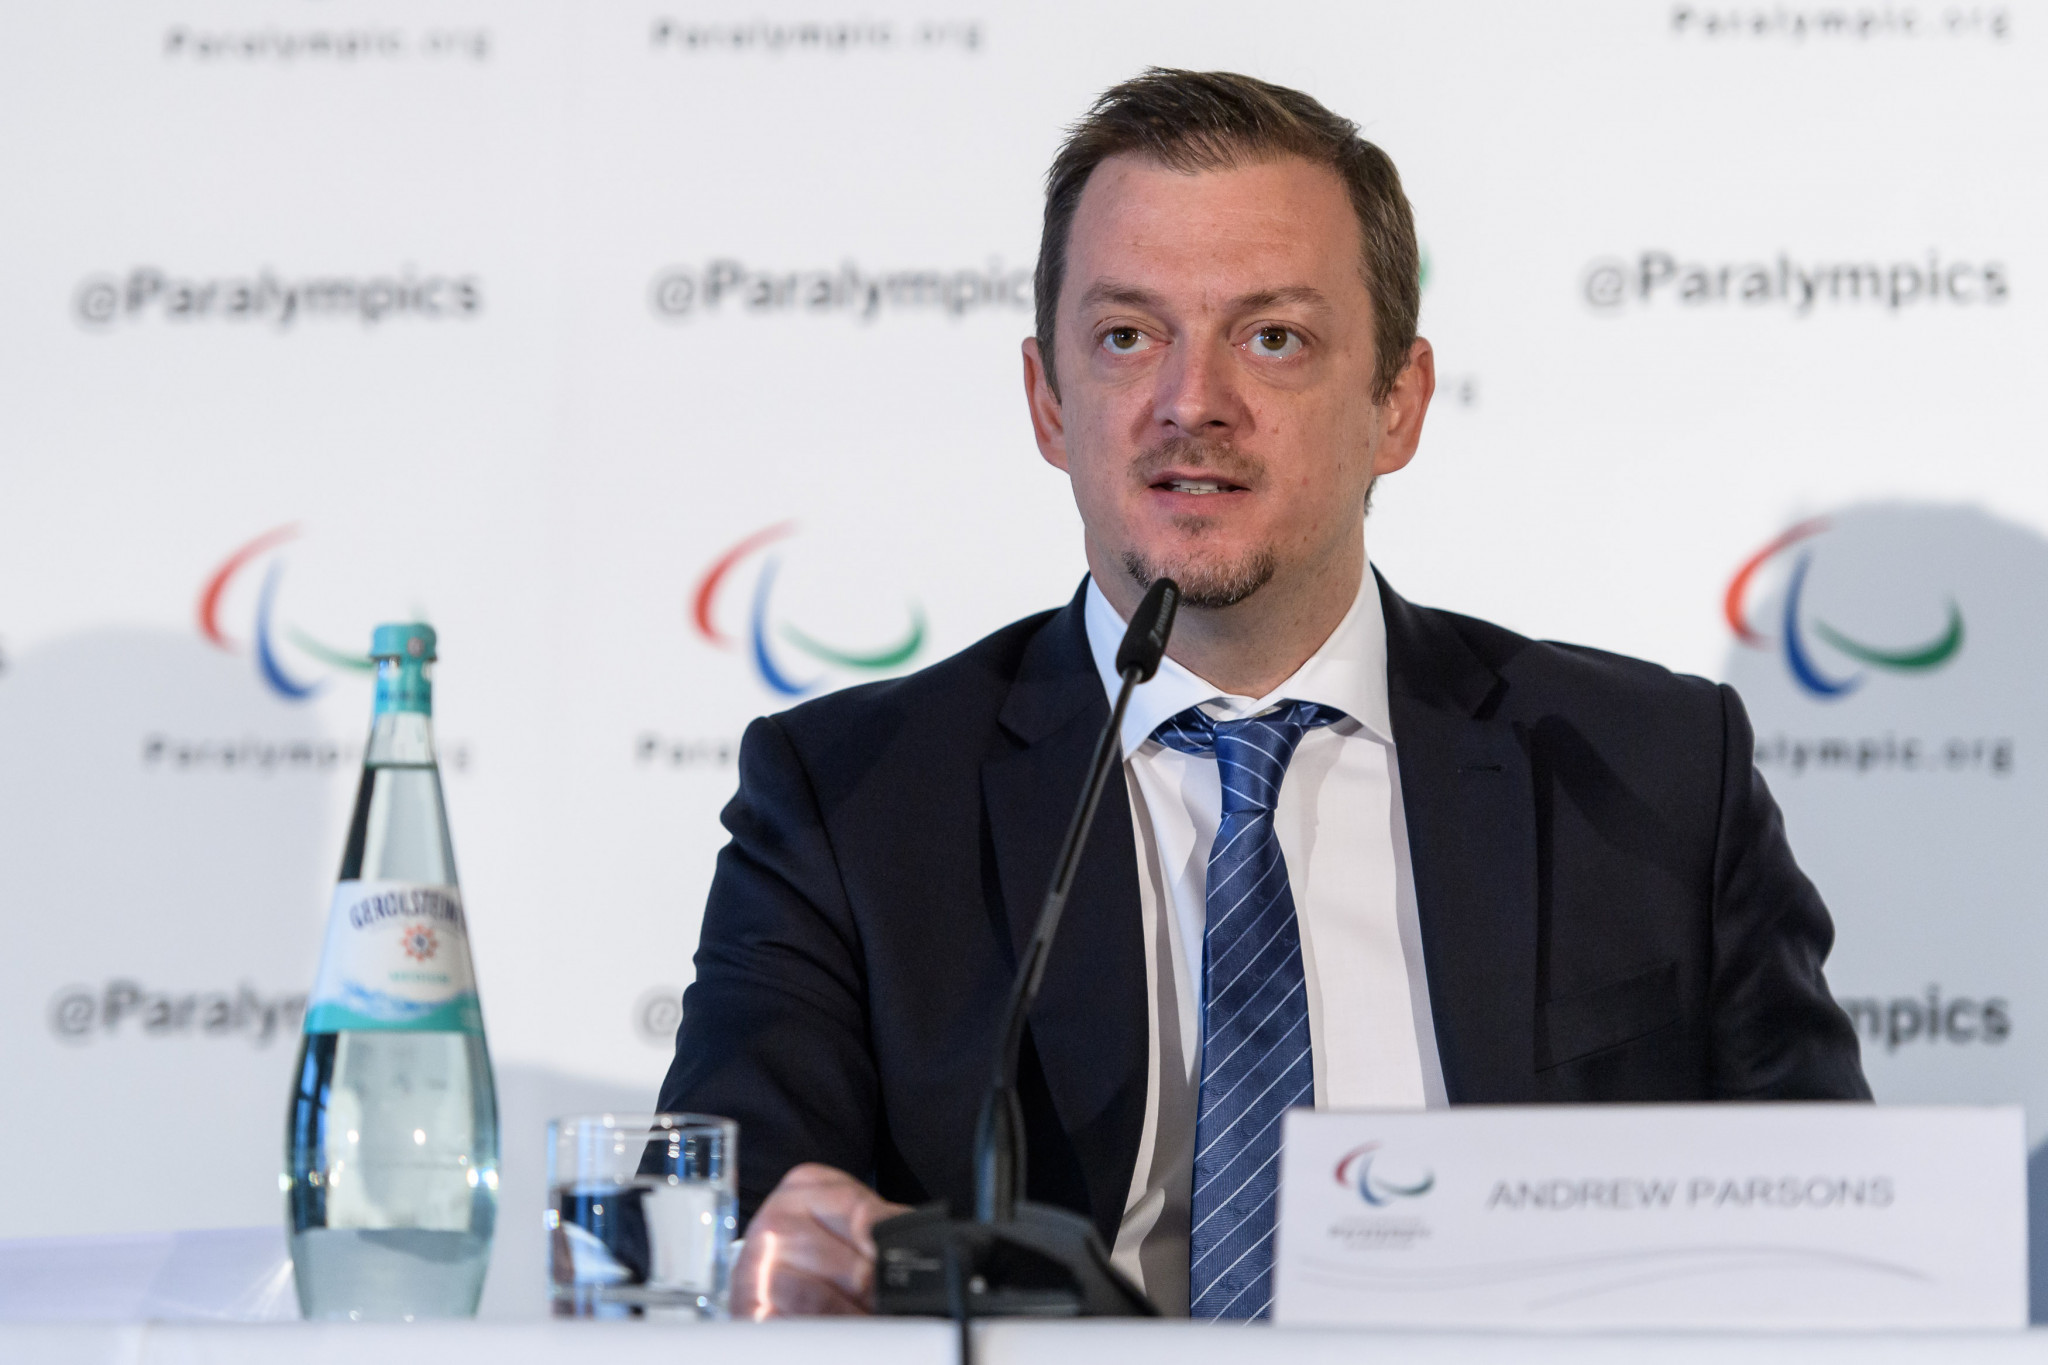 IPC to make €1.8 million in grant funding available to members in 2021